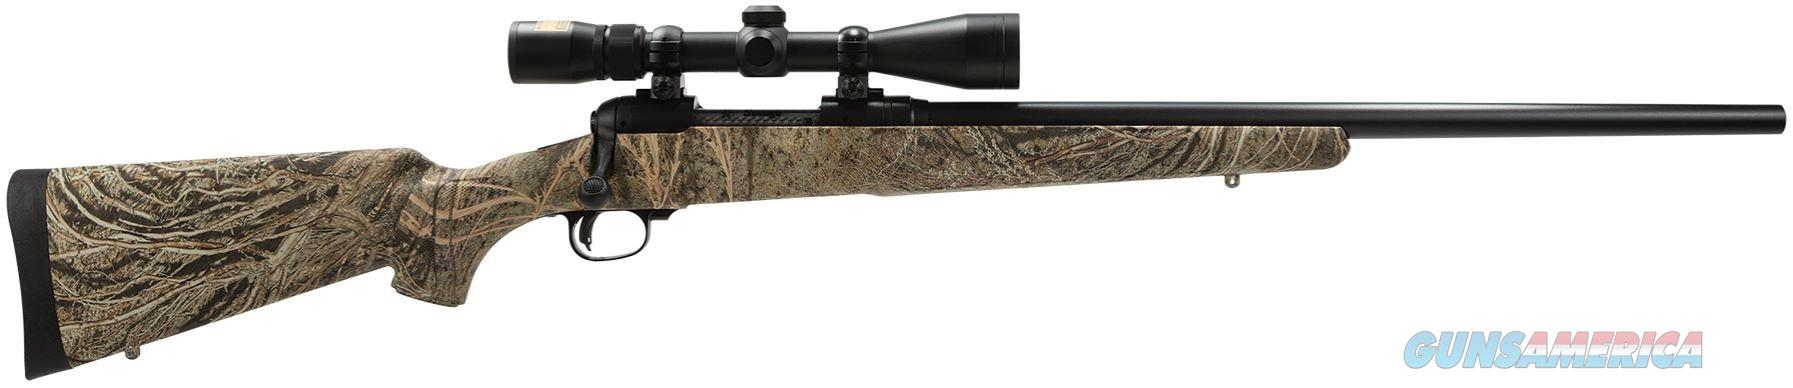 "Savage 11 Trophy Predator Hunter 6.5 Creedmoor 22"" 4+1 with Nikon Scope - New in Box  Guns > Rifles > Savage Rifles > 11/111"